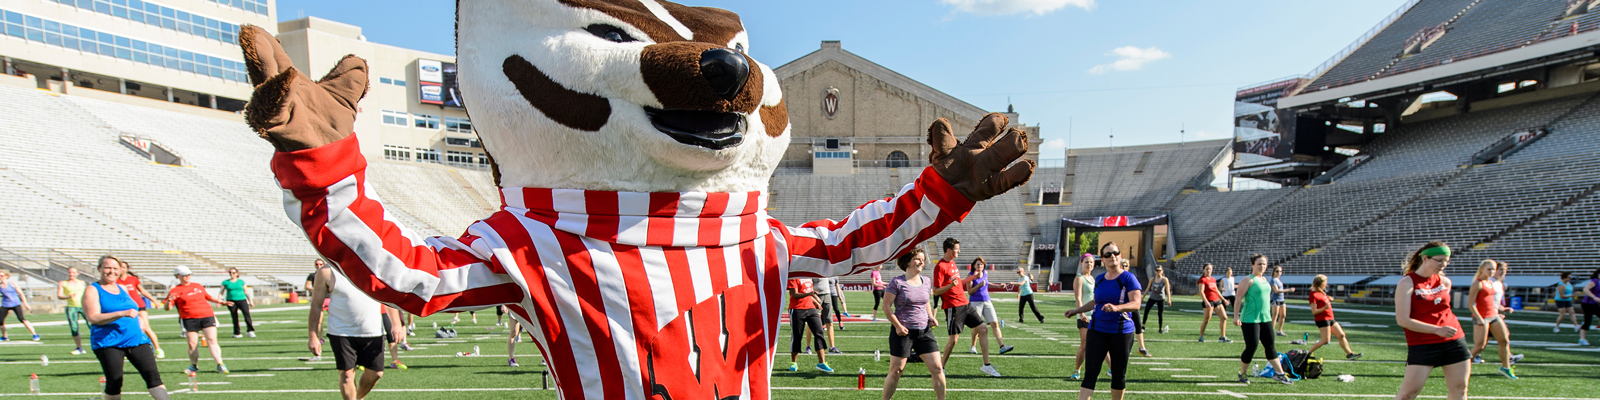 Members of the UW–Madison community participate in Bucky's Workout at Camp Randall